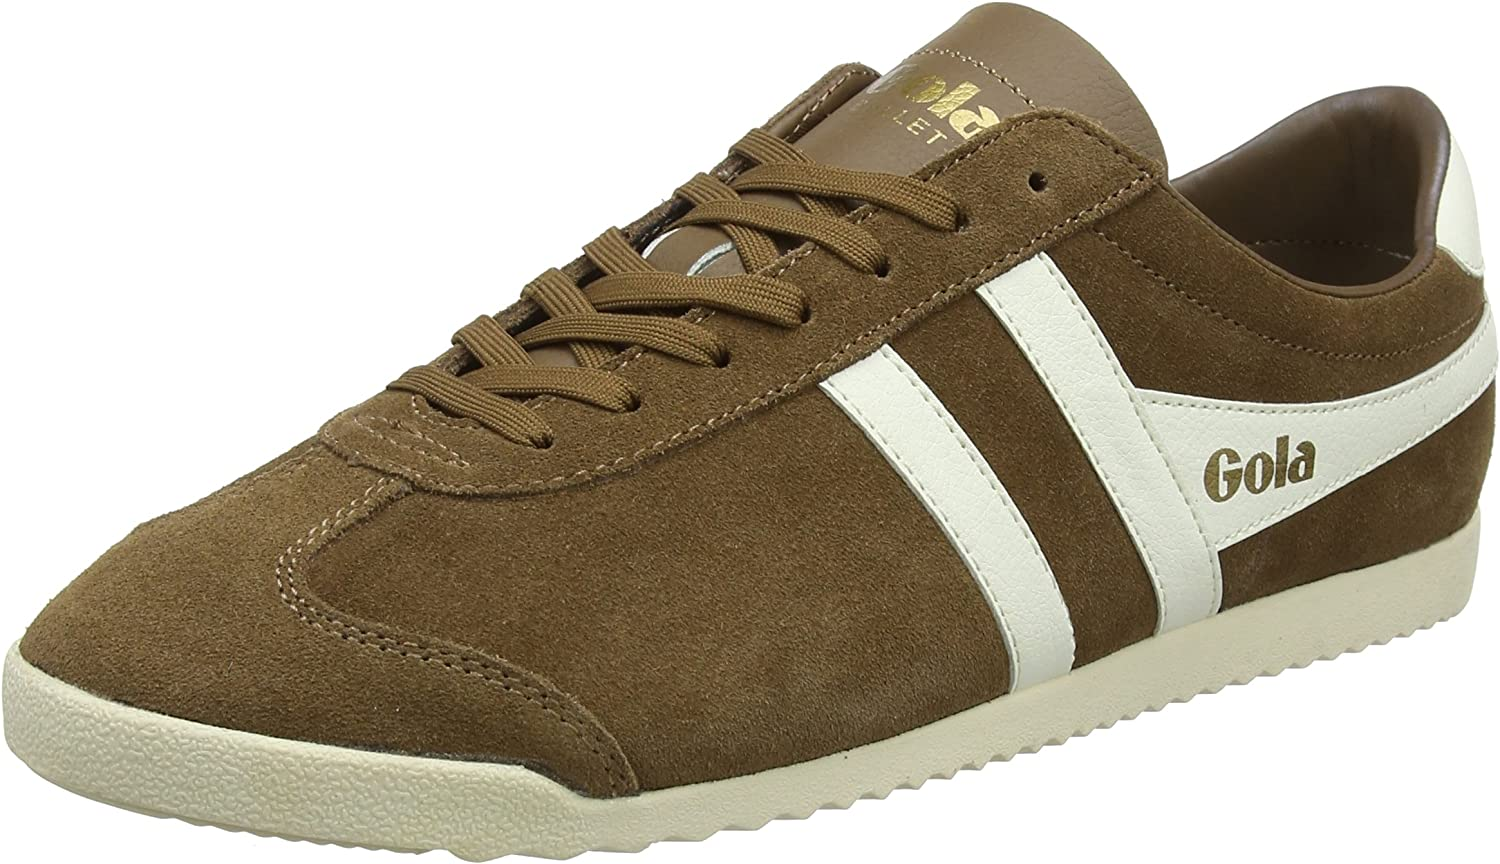 Gola Men's Bullet Suede Tobacco Off White Trainers